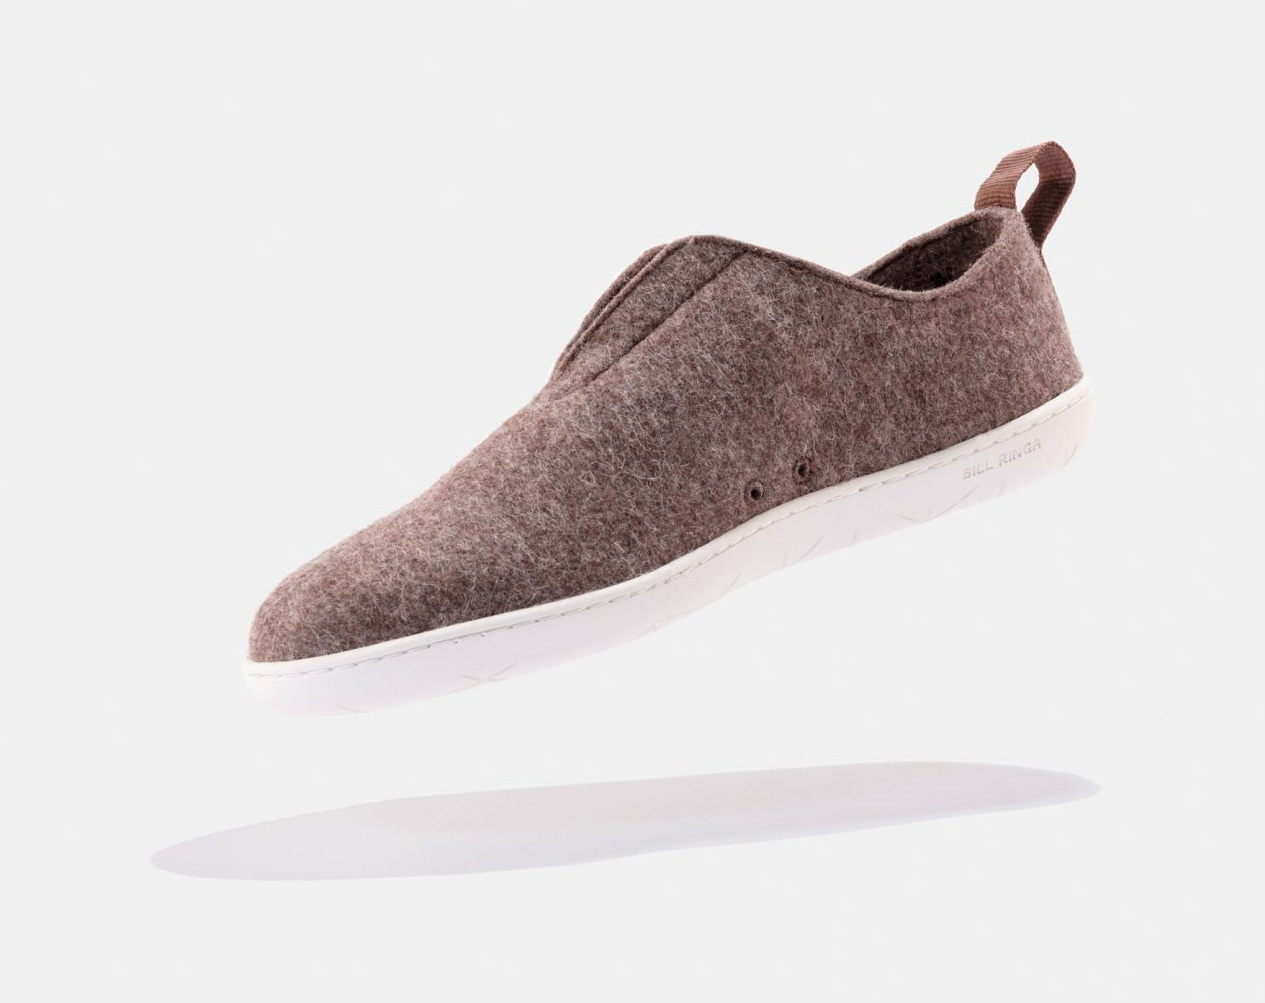 This is the Slipper-Sneaker Hybrid We All Want at werd.com